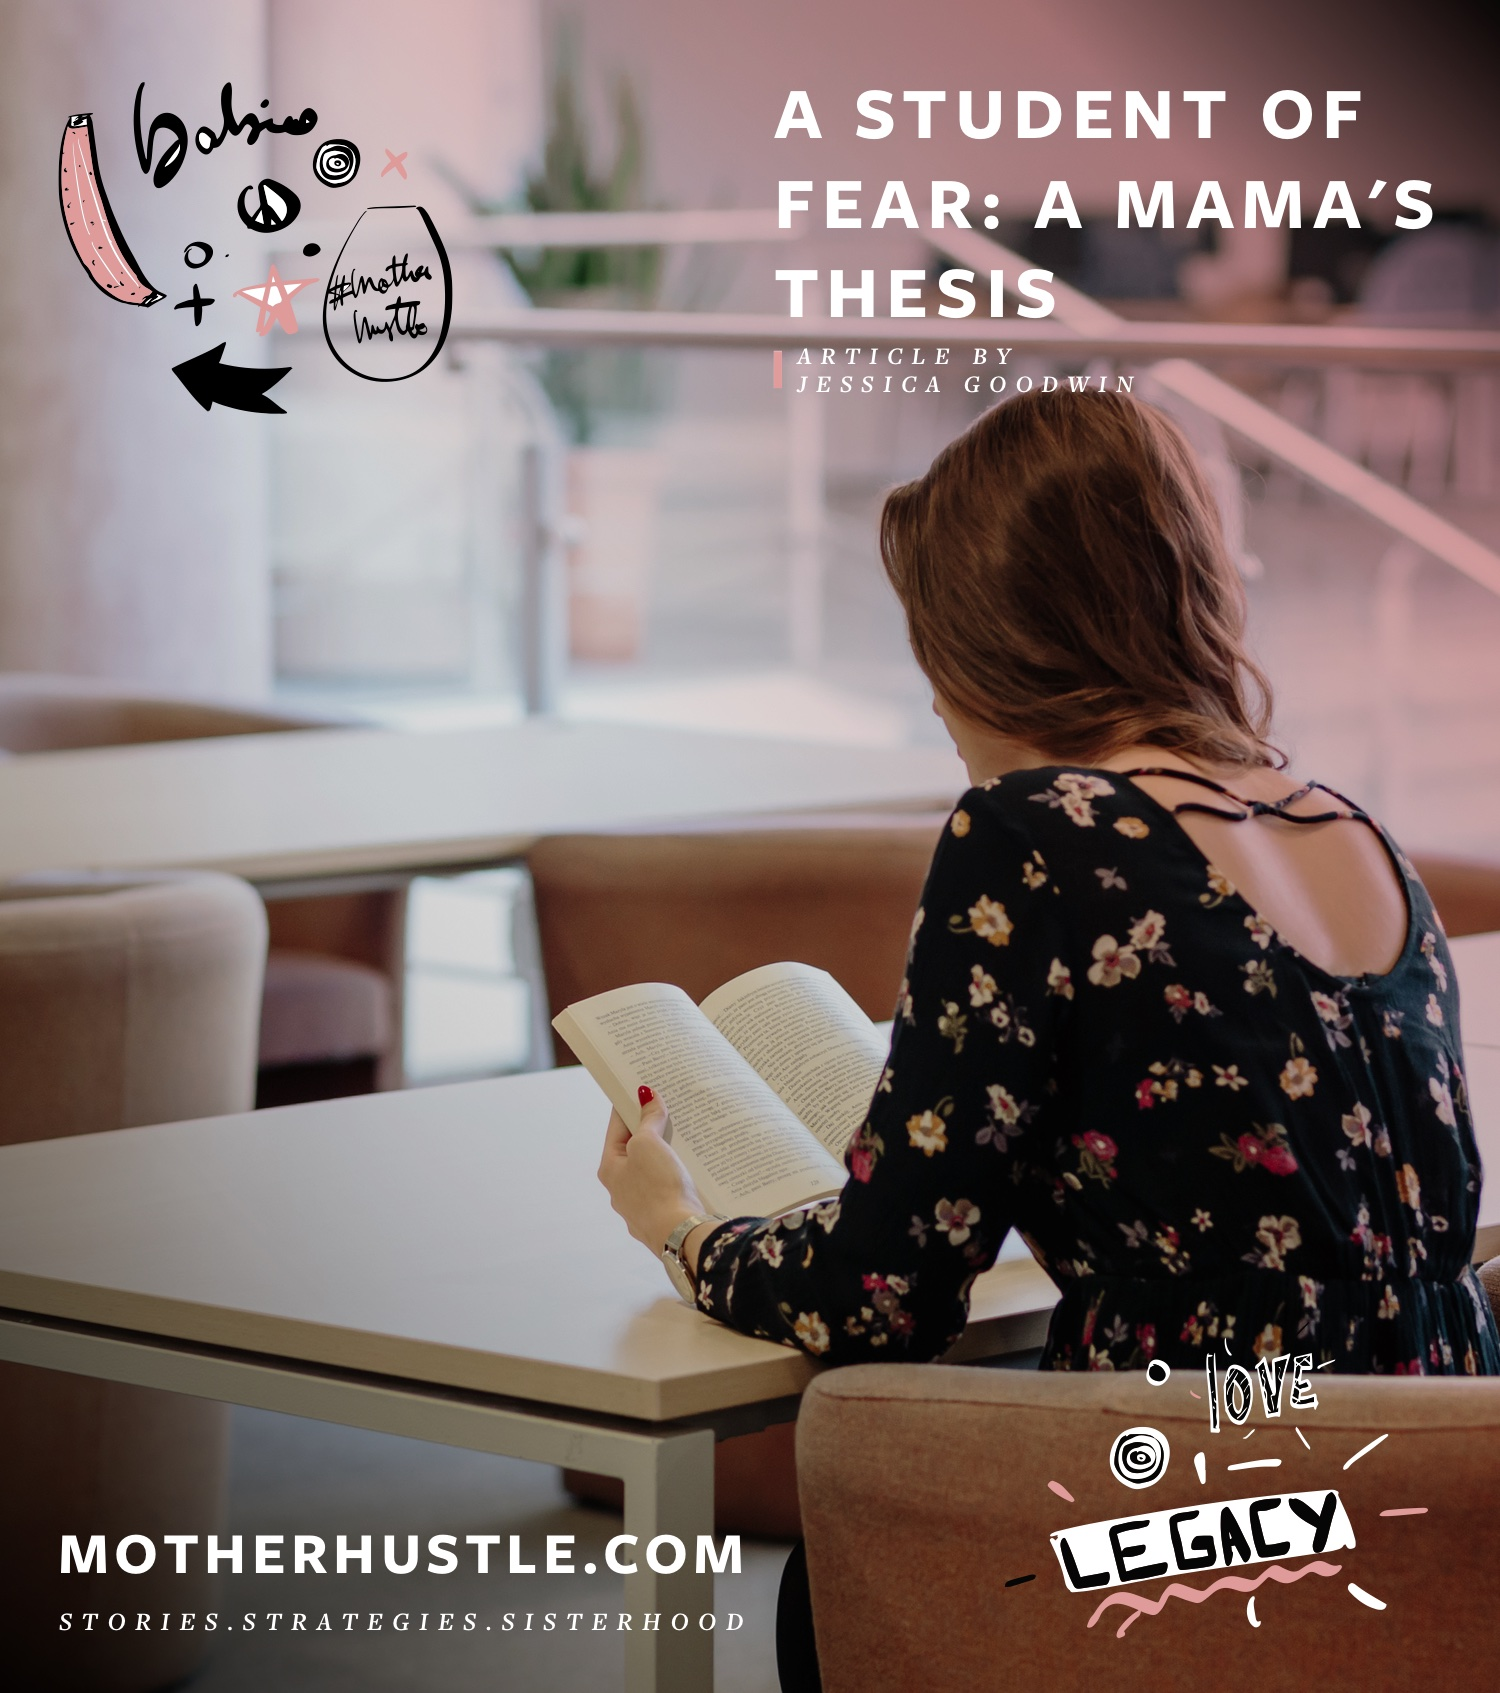 A Student of Fear: A Mama's Thesis